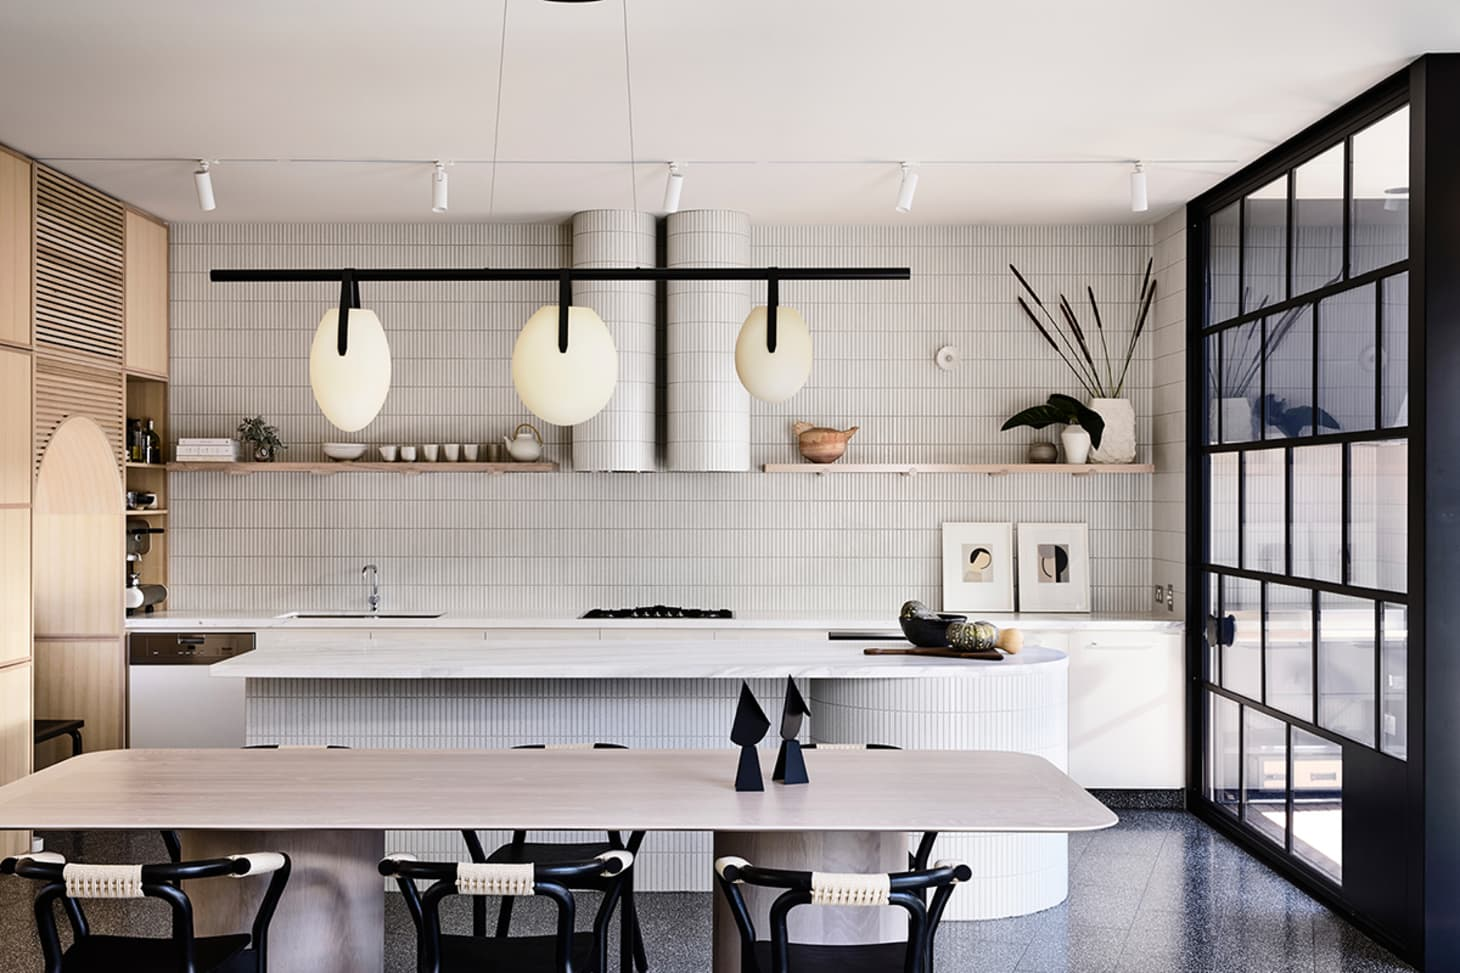 16 Kitchen Shelf Ideas That Will Double Your Storage Space ...